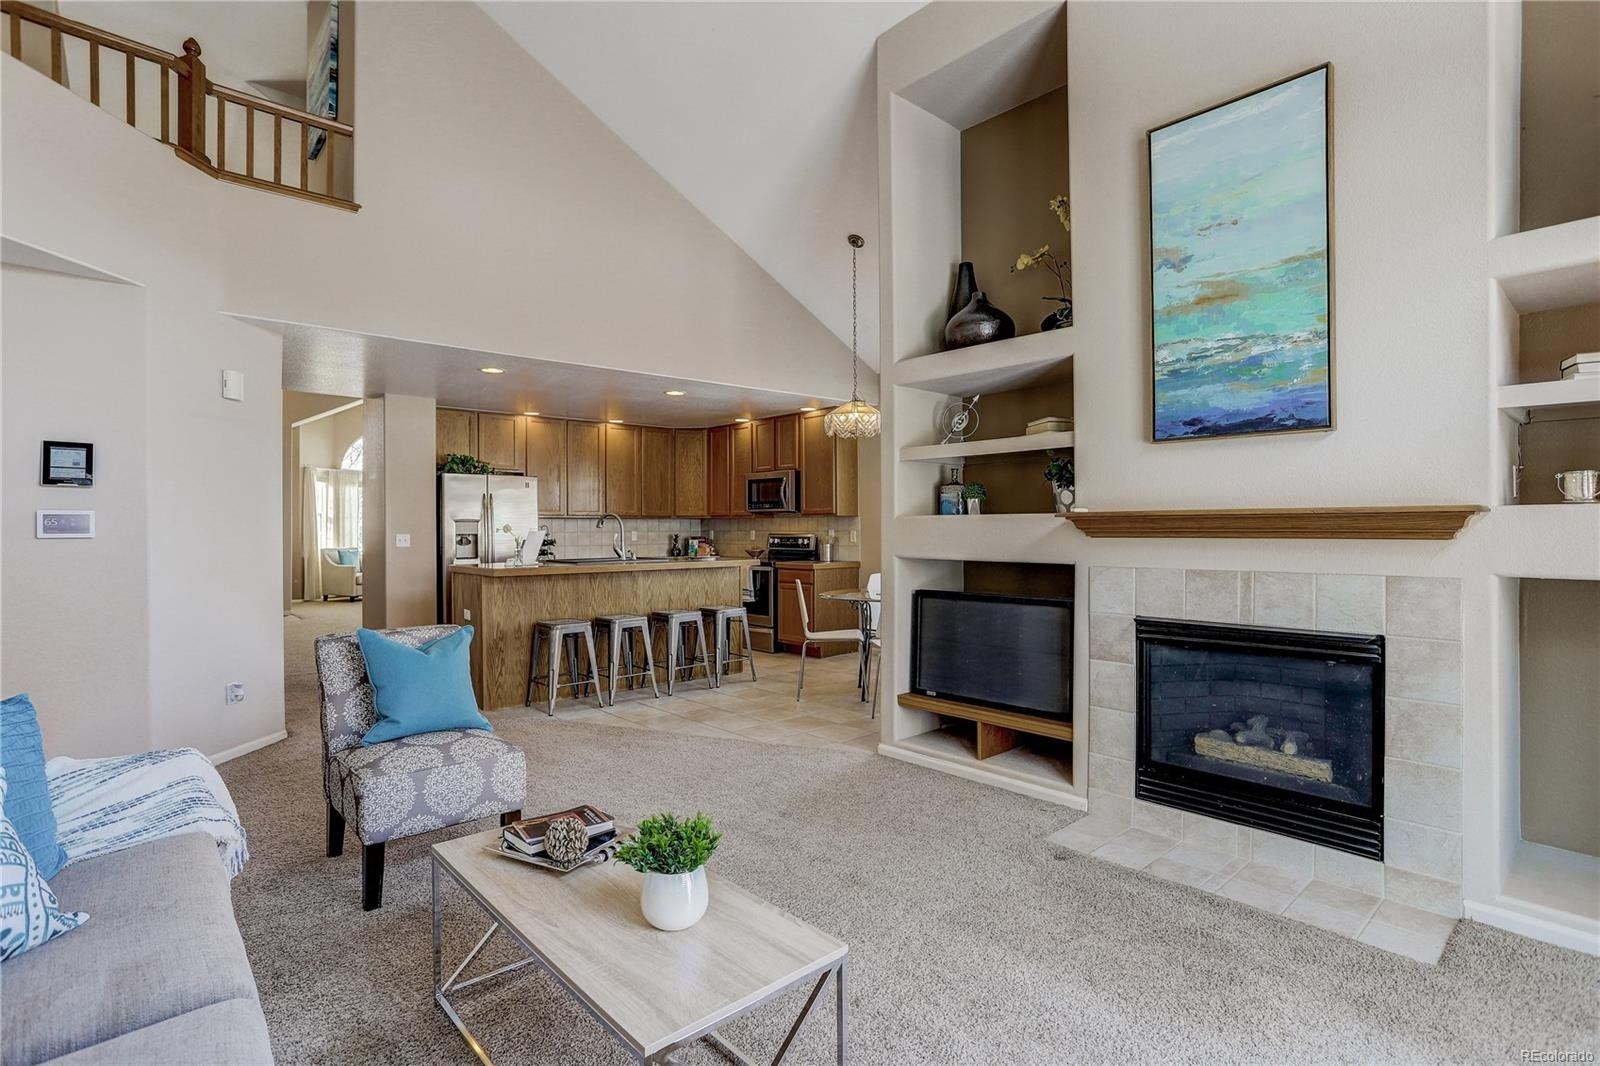 MLS# 8327774 - 15 - 806 W 127th Court, Westminster, CO 80234